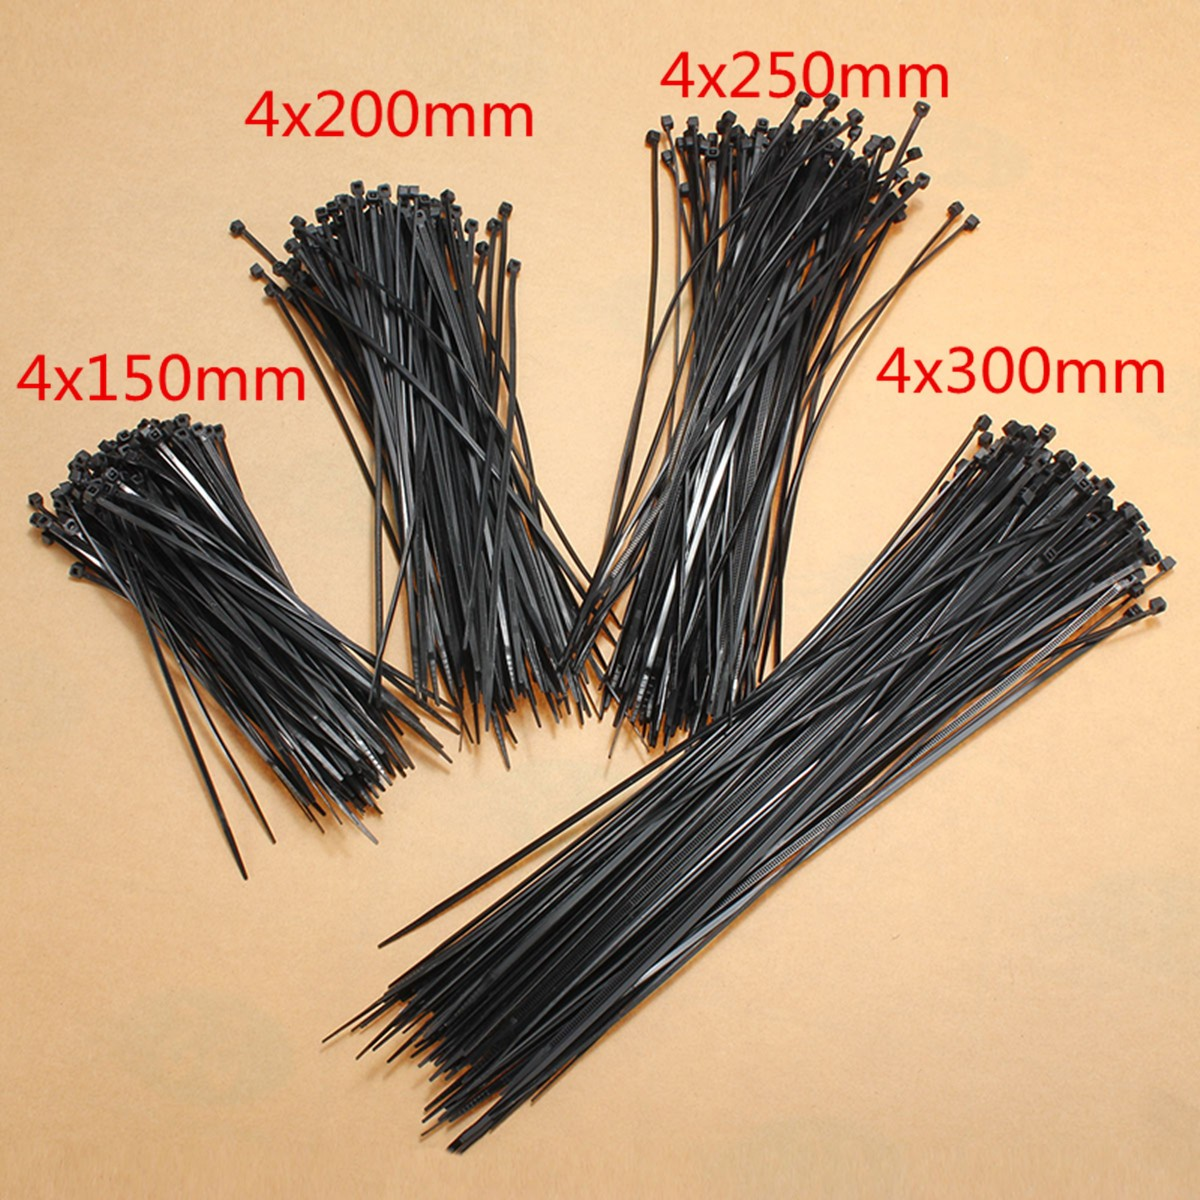 100pcs Nylon Cable Zip Ties Wrap Fasten Wire Self-Locking Cable